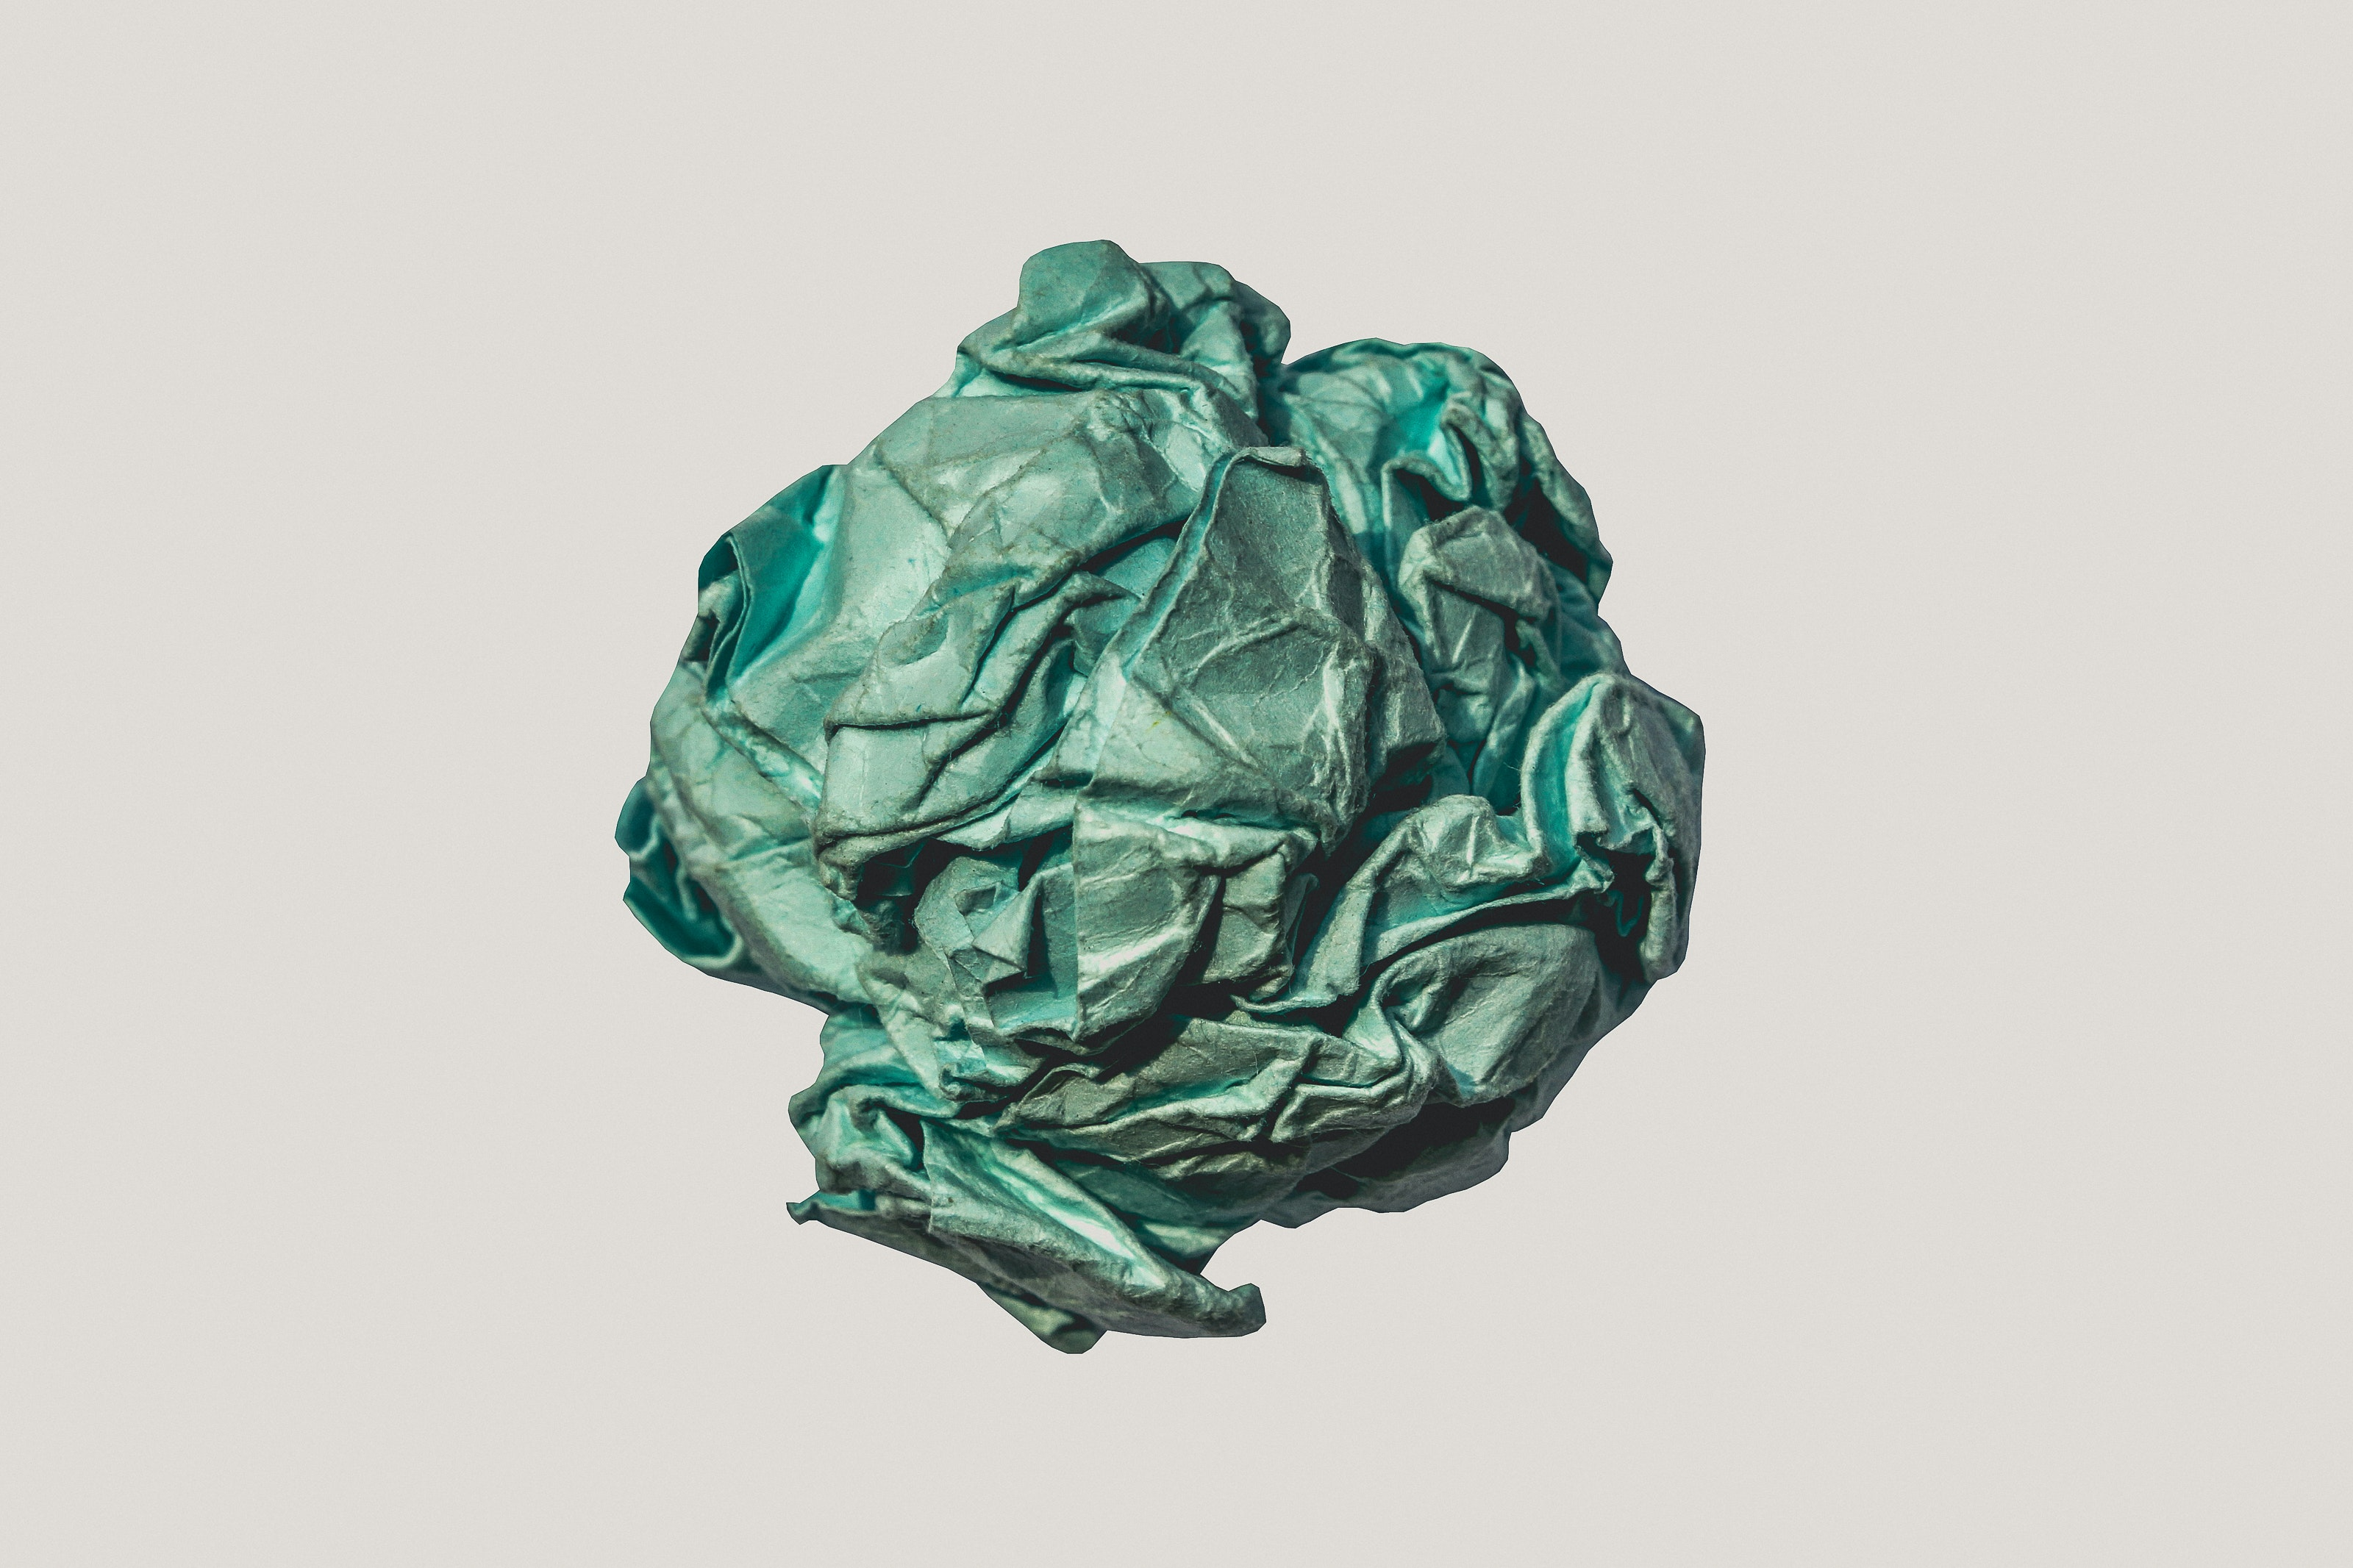 Crumpled green ball of paper